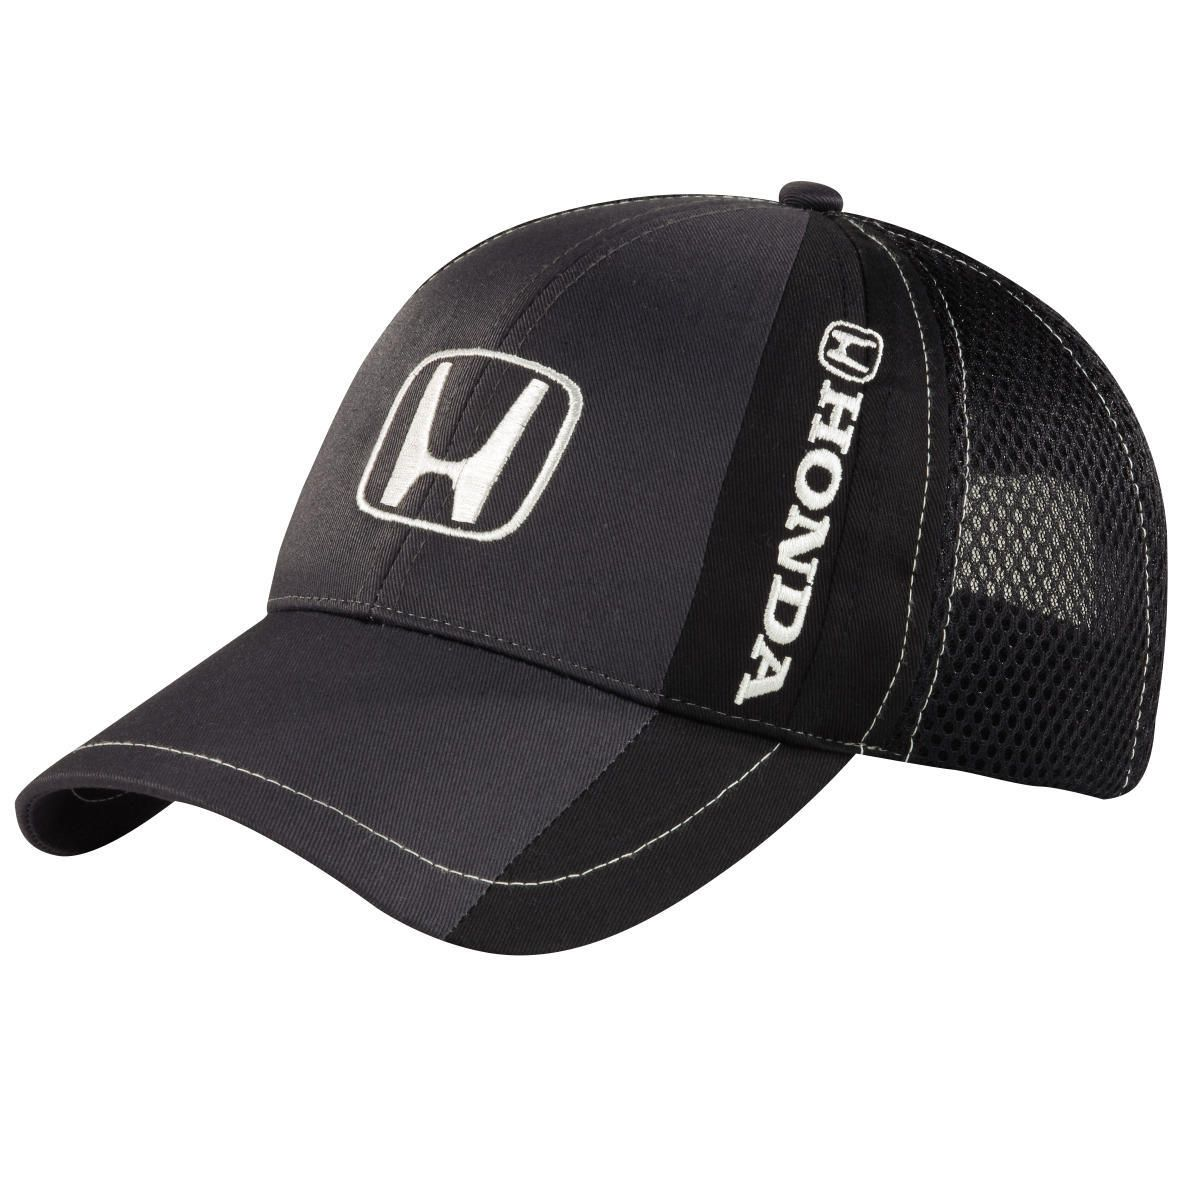 Honda Mesh Side Logo Cap College Hills Honda Hats for